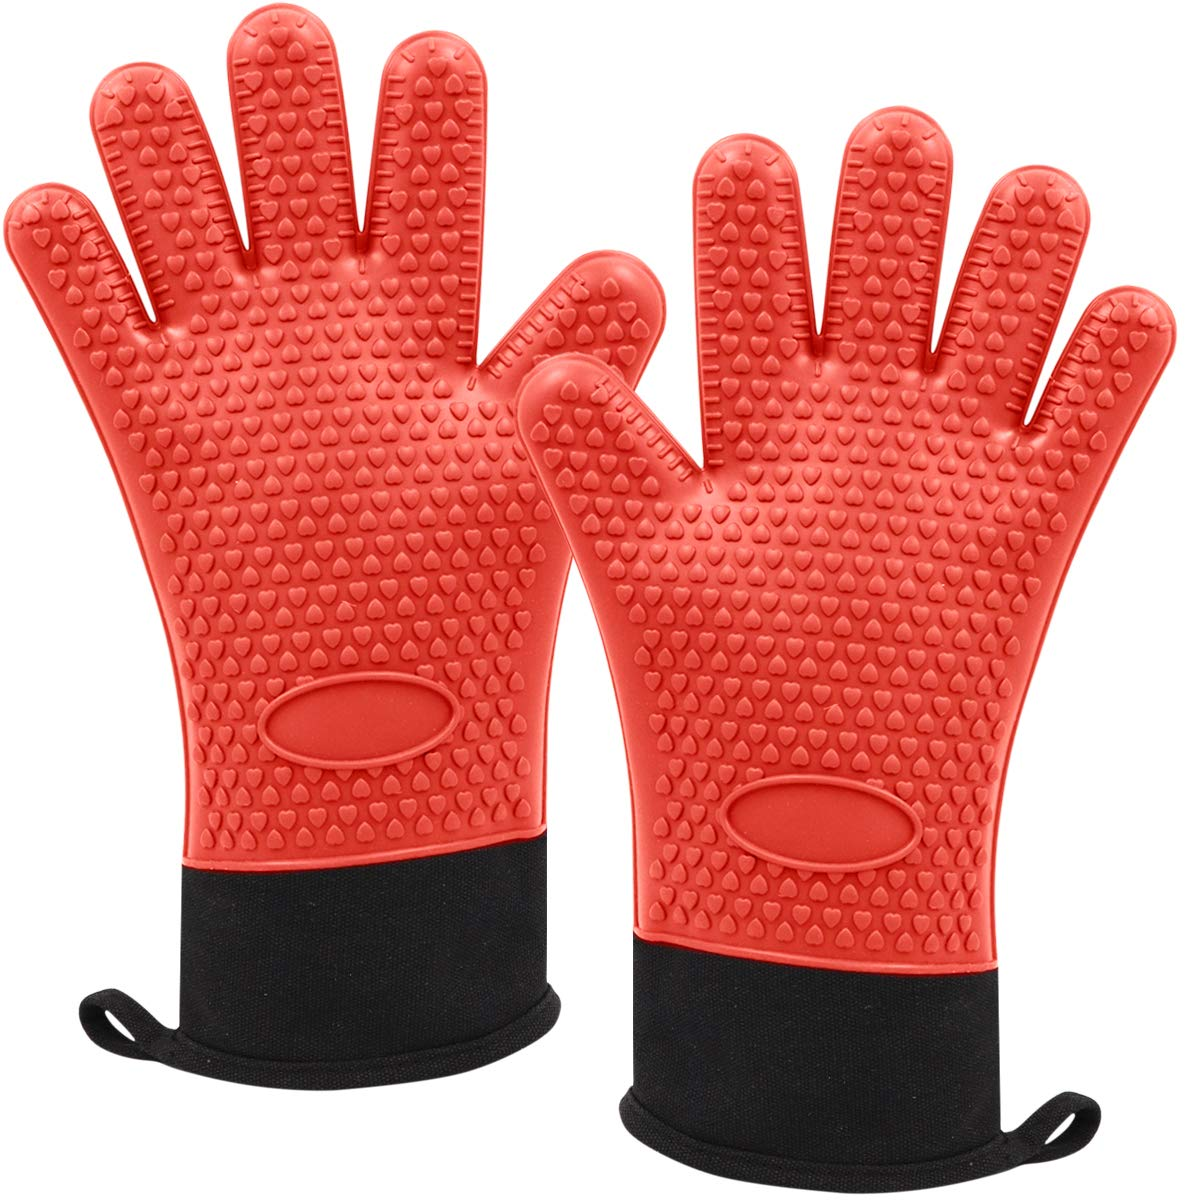 Silicone Cooking Gloves, Heat Resistant Grilling Gloves Oven Mitts with Extra Long Sleeve Internal Protective Cotton Layer, Non-Slip Cooking, Baking, Barbecue Gloves (Red)